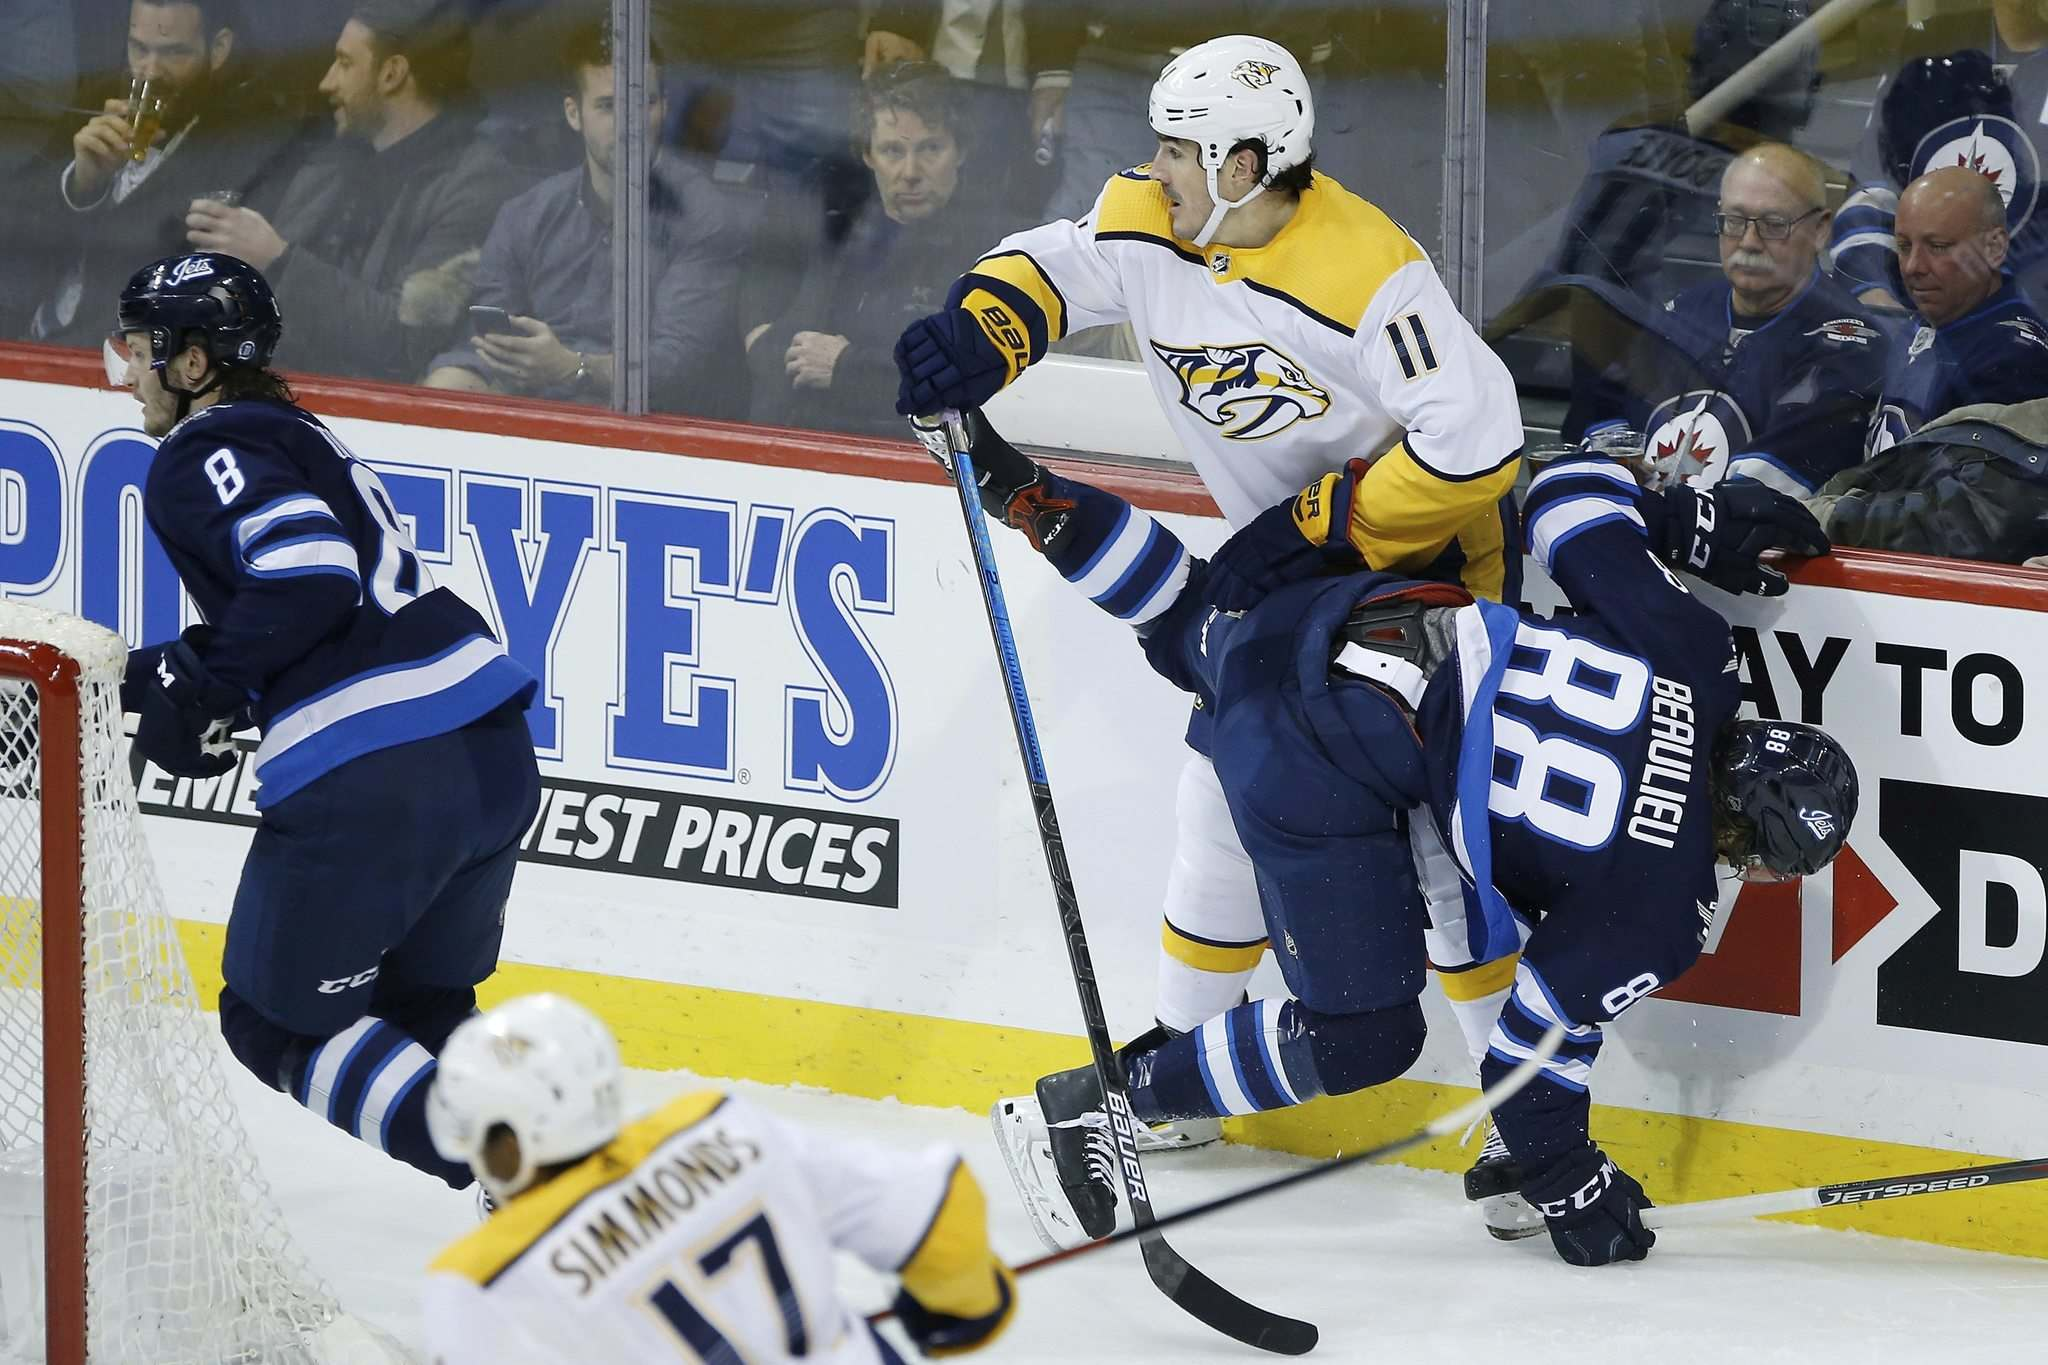 John Woods / The Canadian Press</p><p>Predators newcomer Brian Boyle blasts Jets newbie Nathan Beaulieu during Winnipeg's 5-3 win Friday night.</p></p>